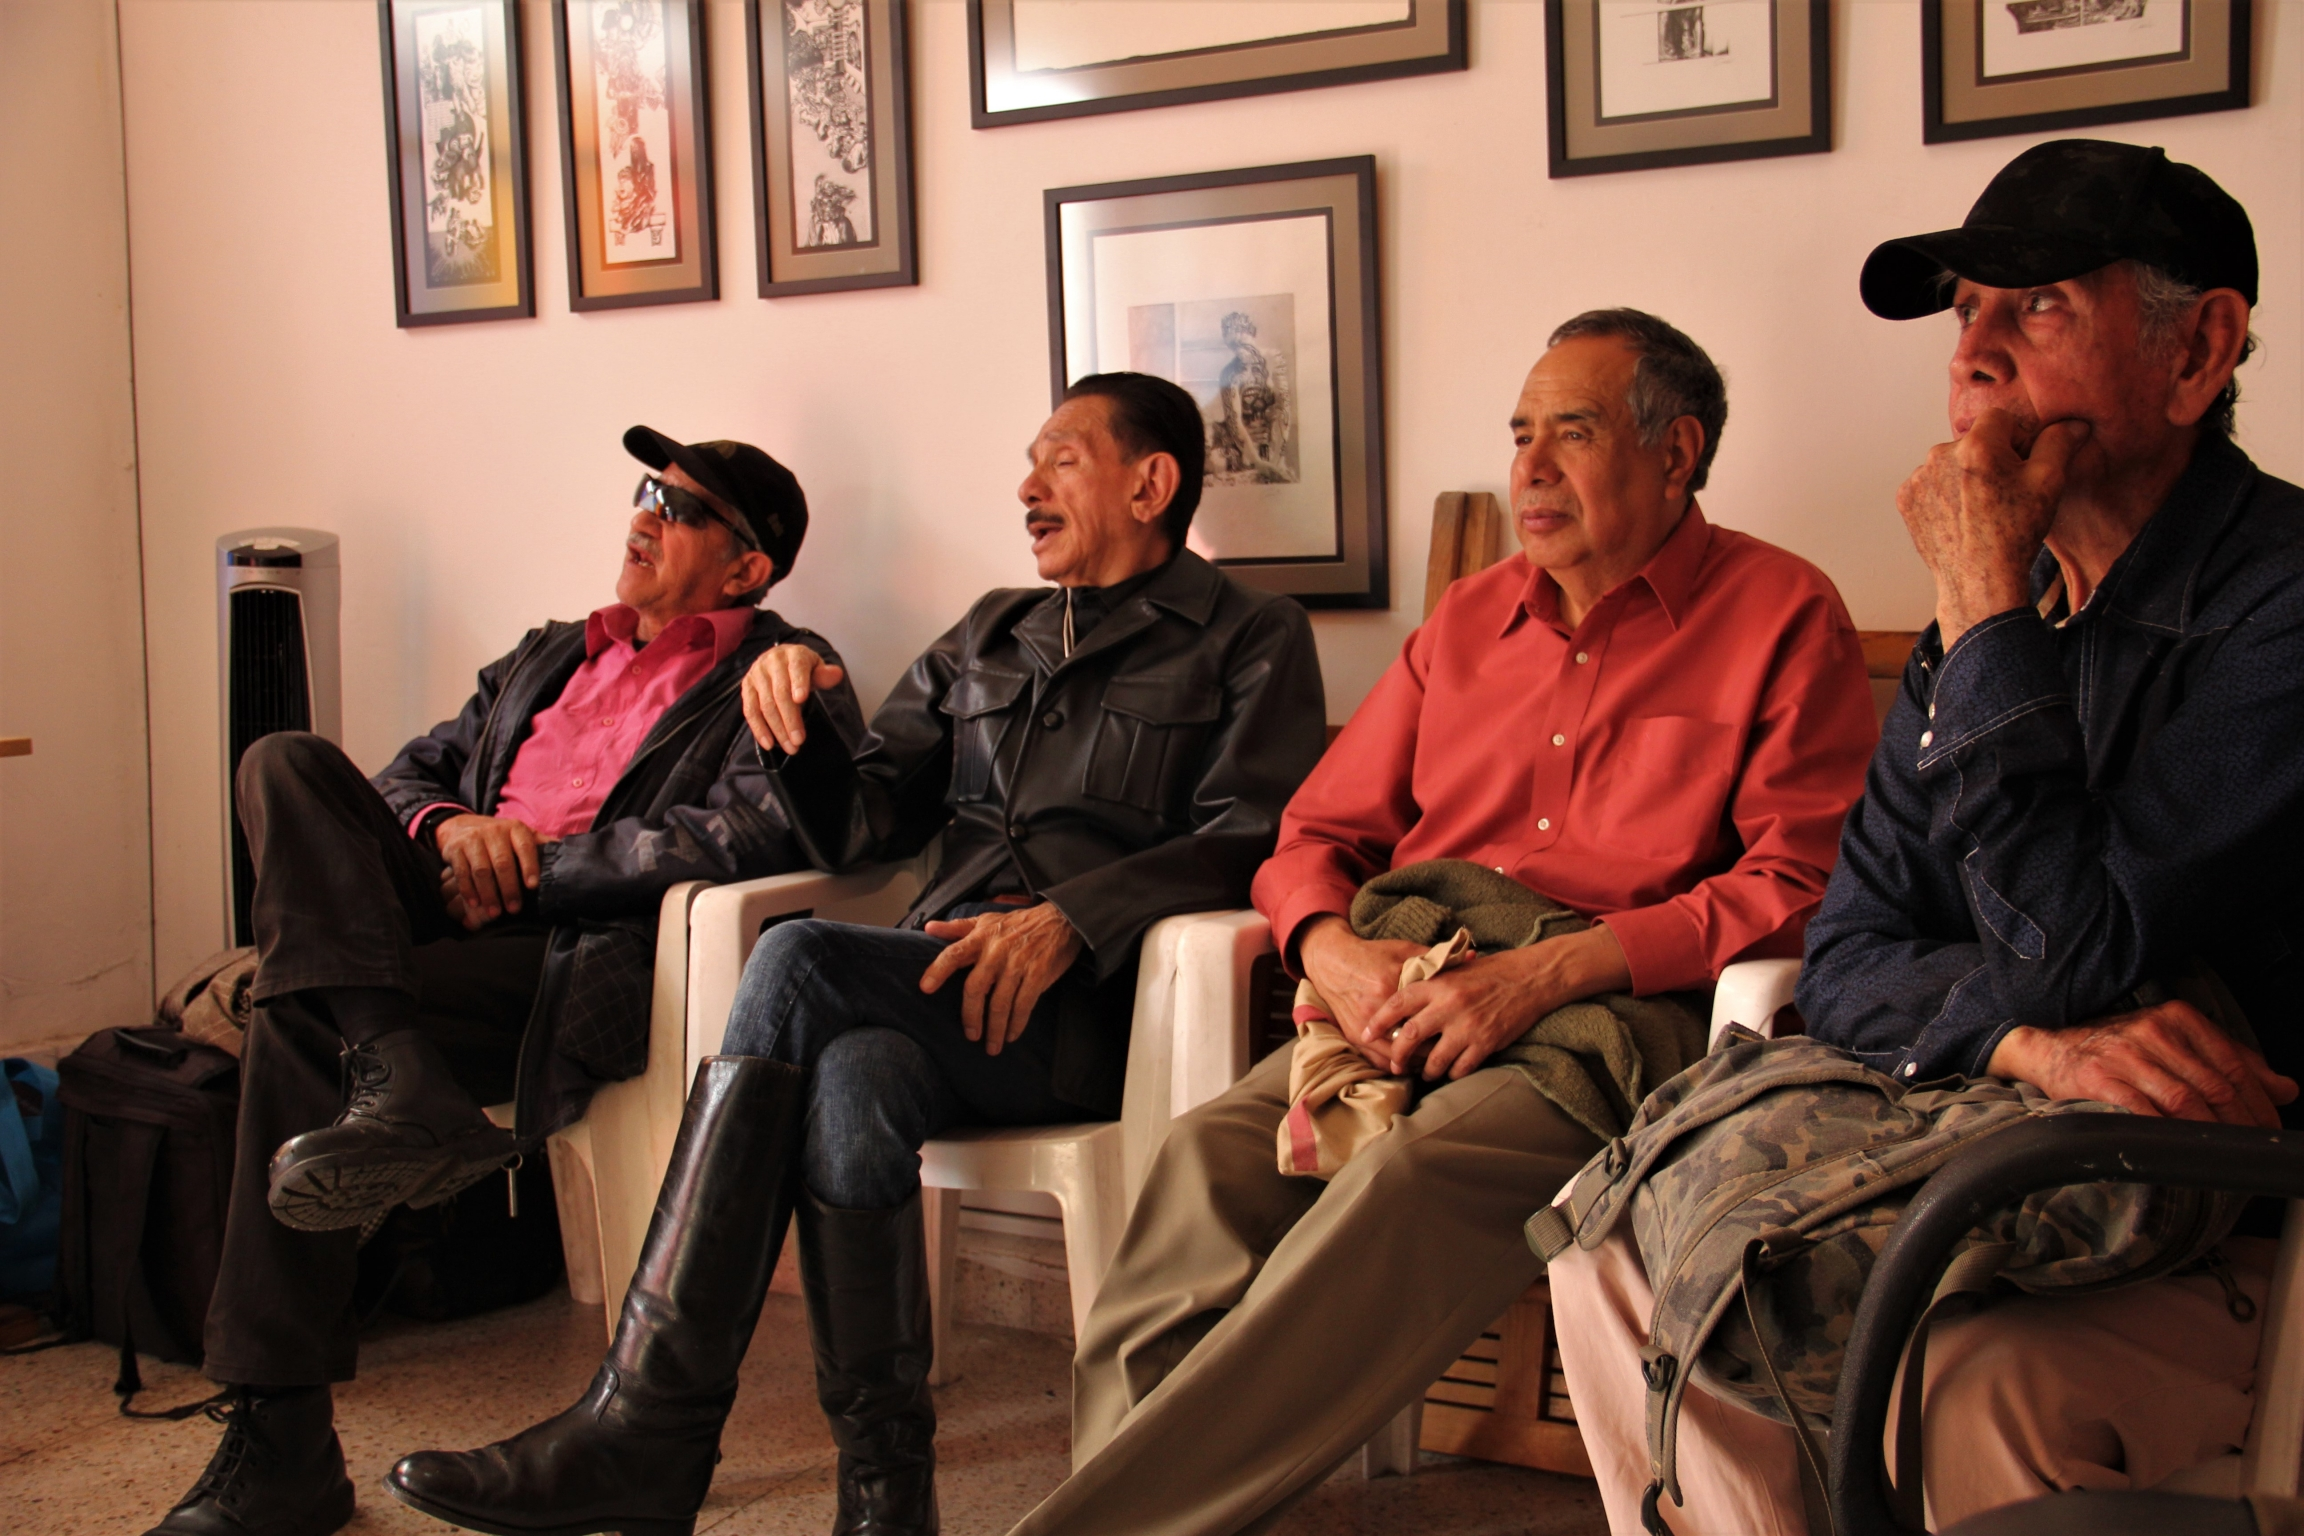 Four men sit on chairs in a small room